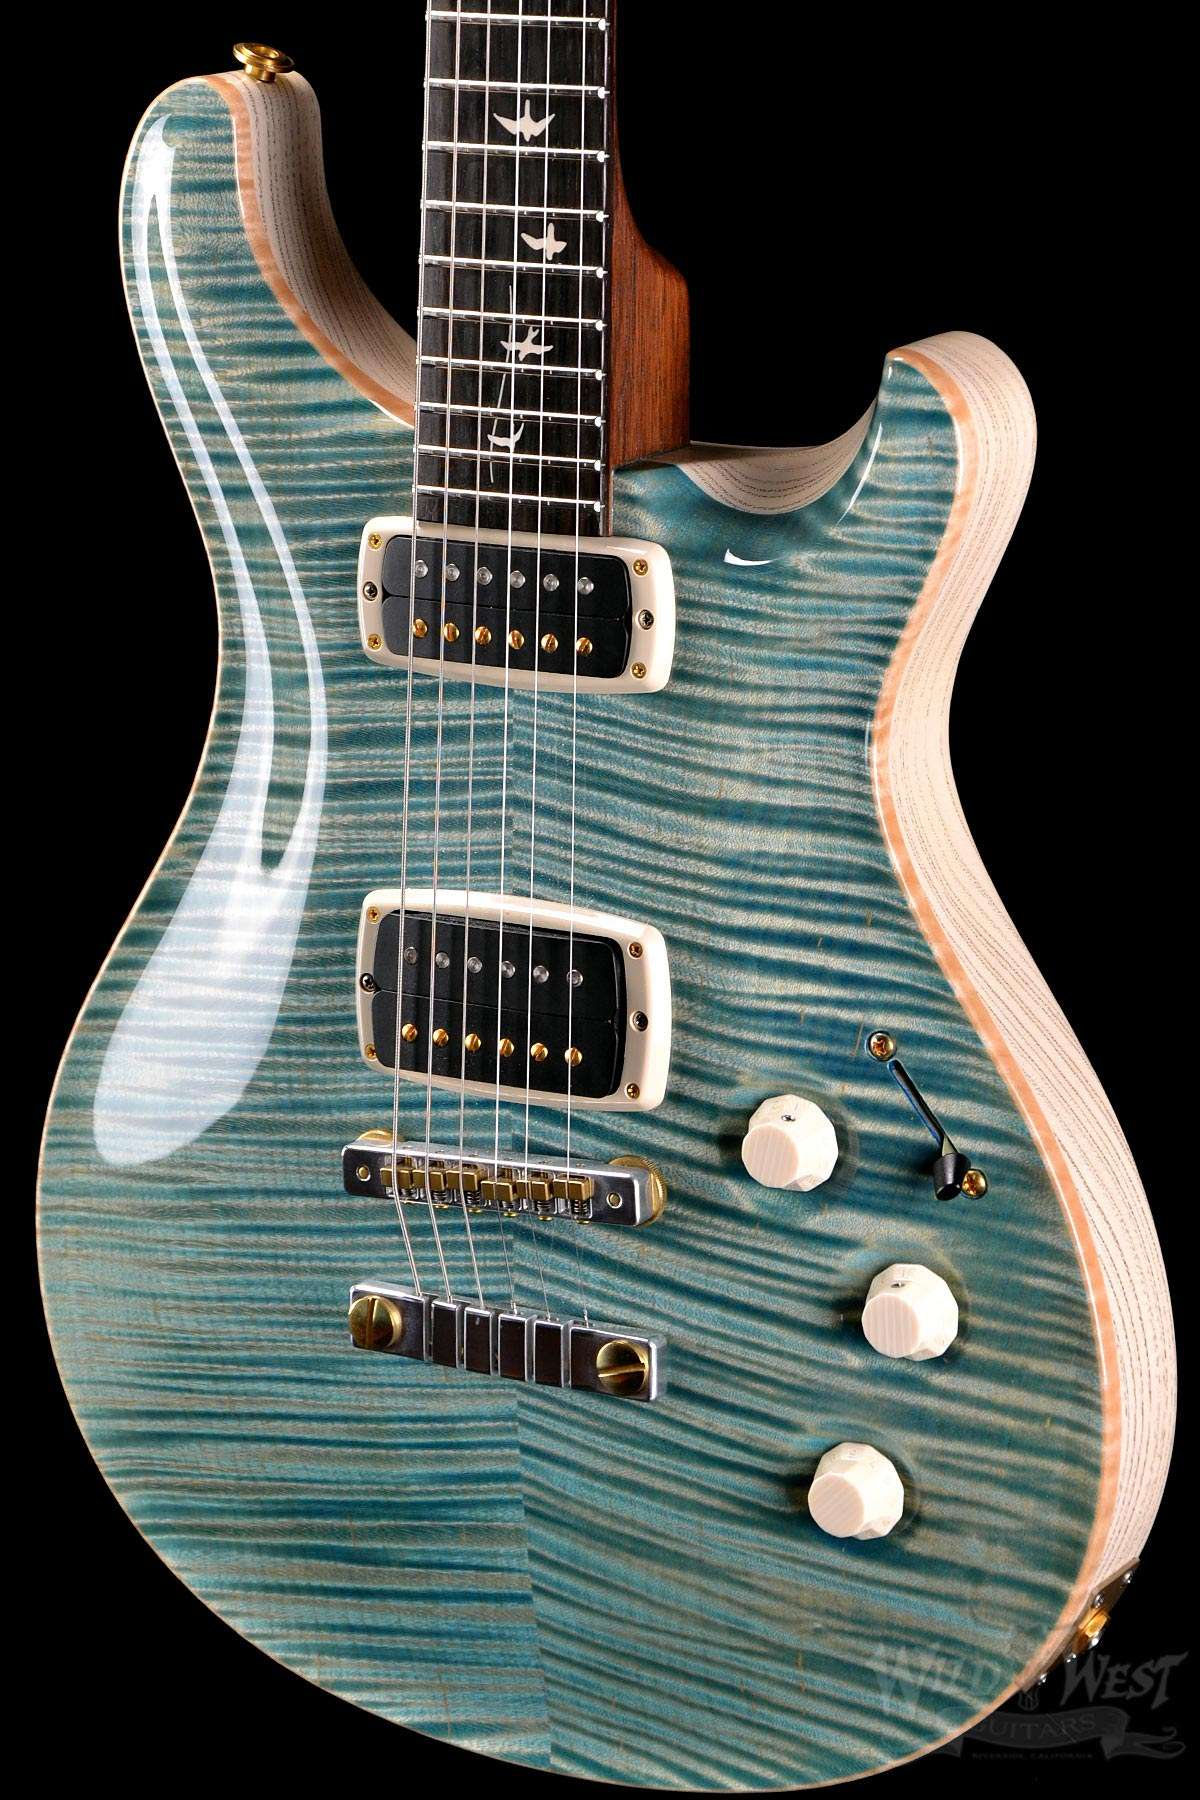 4409b2095f5 PRS Paul Reed Smith DC245 Private Stock 5122 Double Faded Turquoise -  Preowned - Wild West Guitars